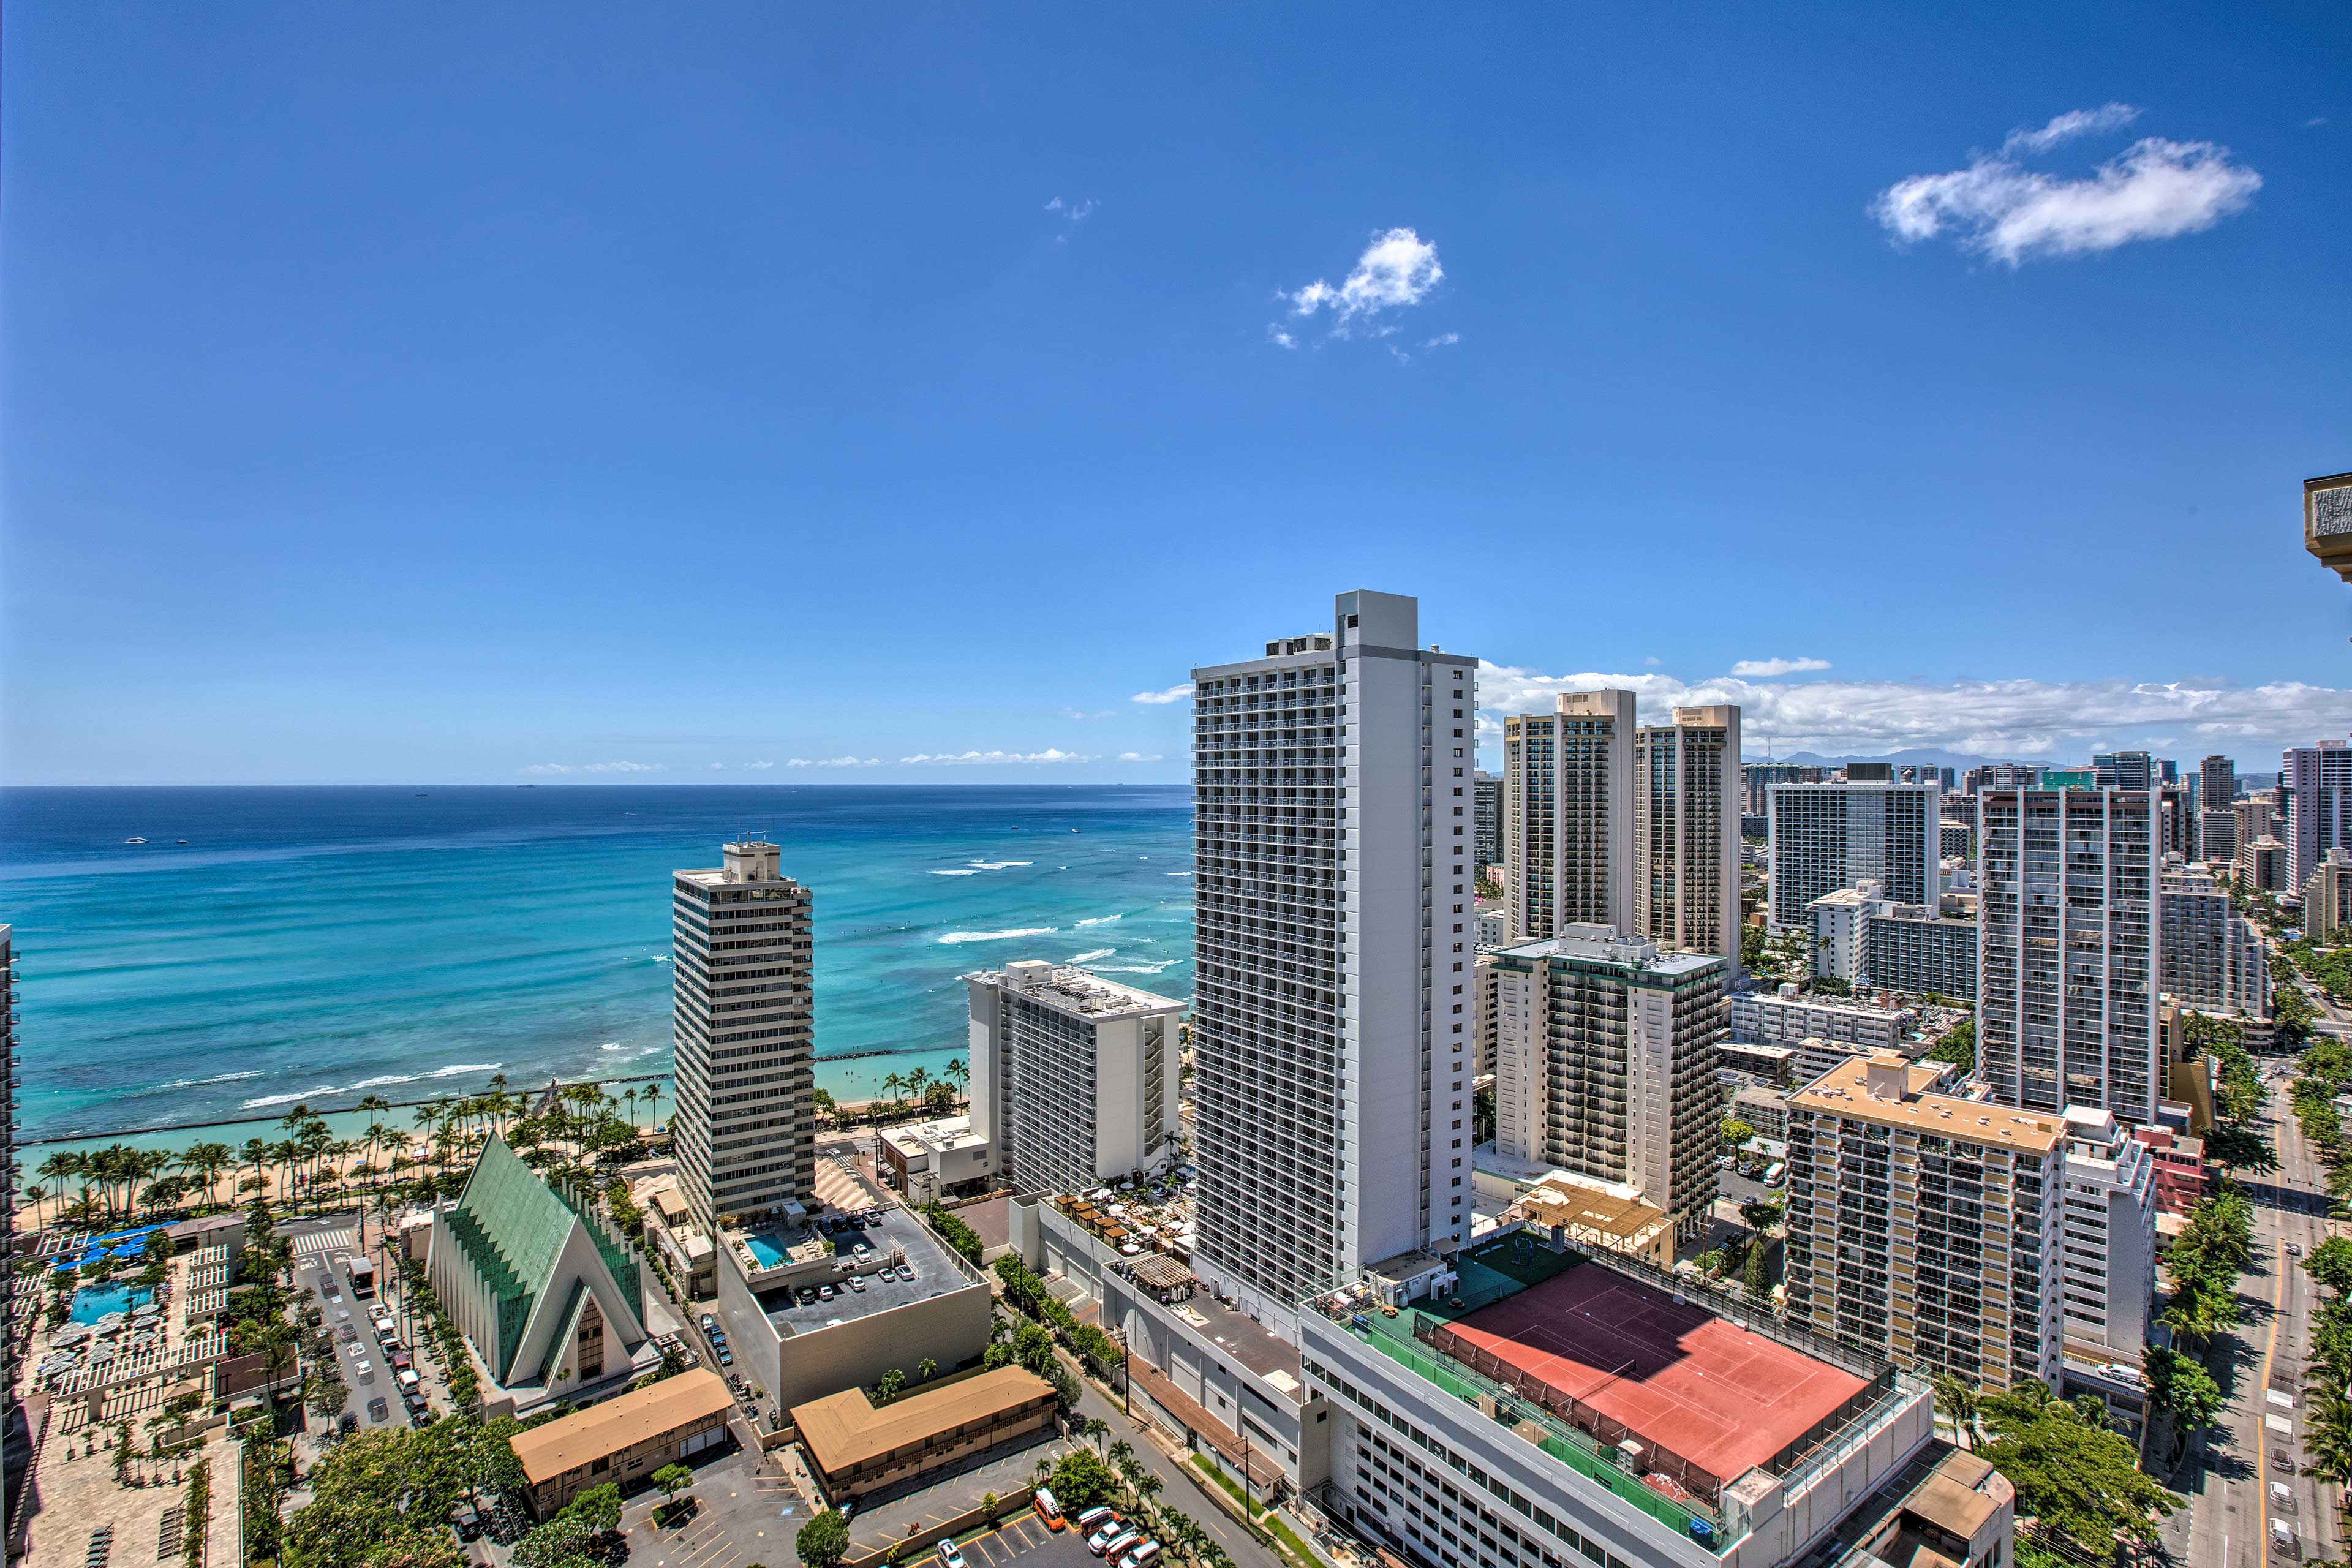 The views from this condo simply can't be beat!